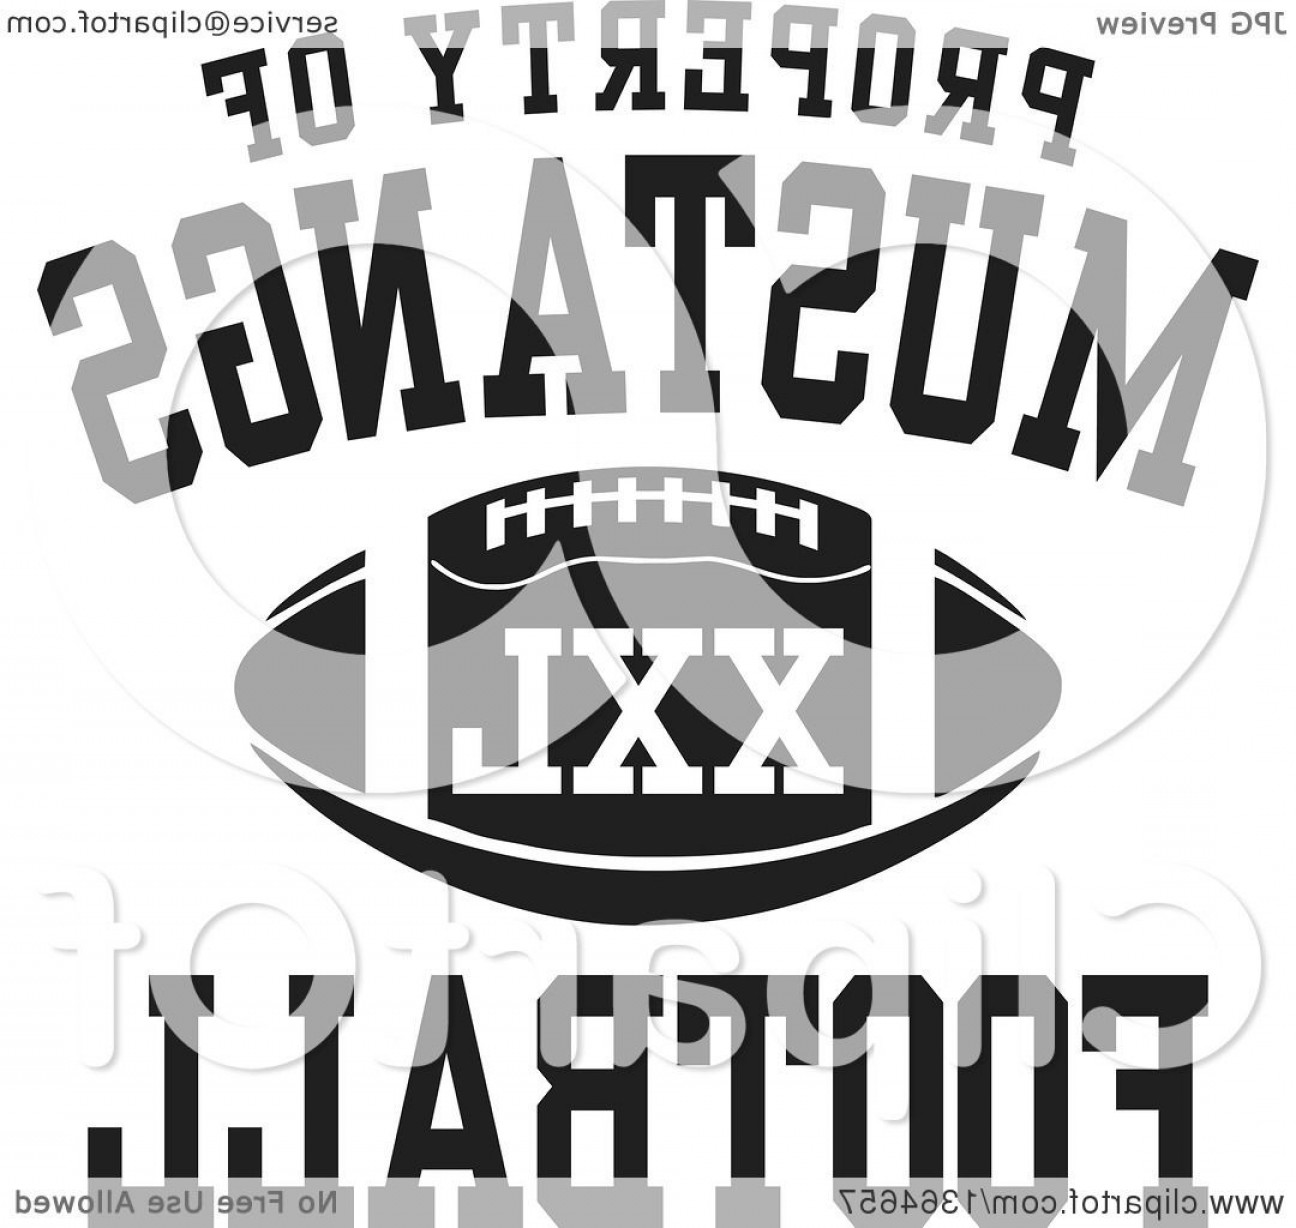 Distressed Football Helmet Vector: Black And White Property Of Mustangs Football Xxl Design